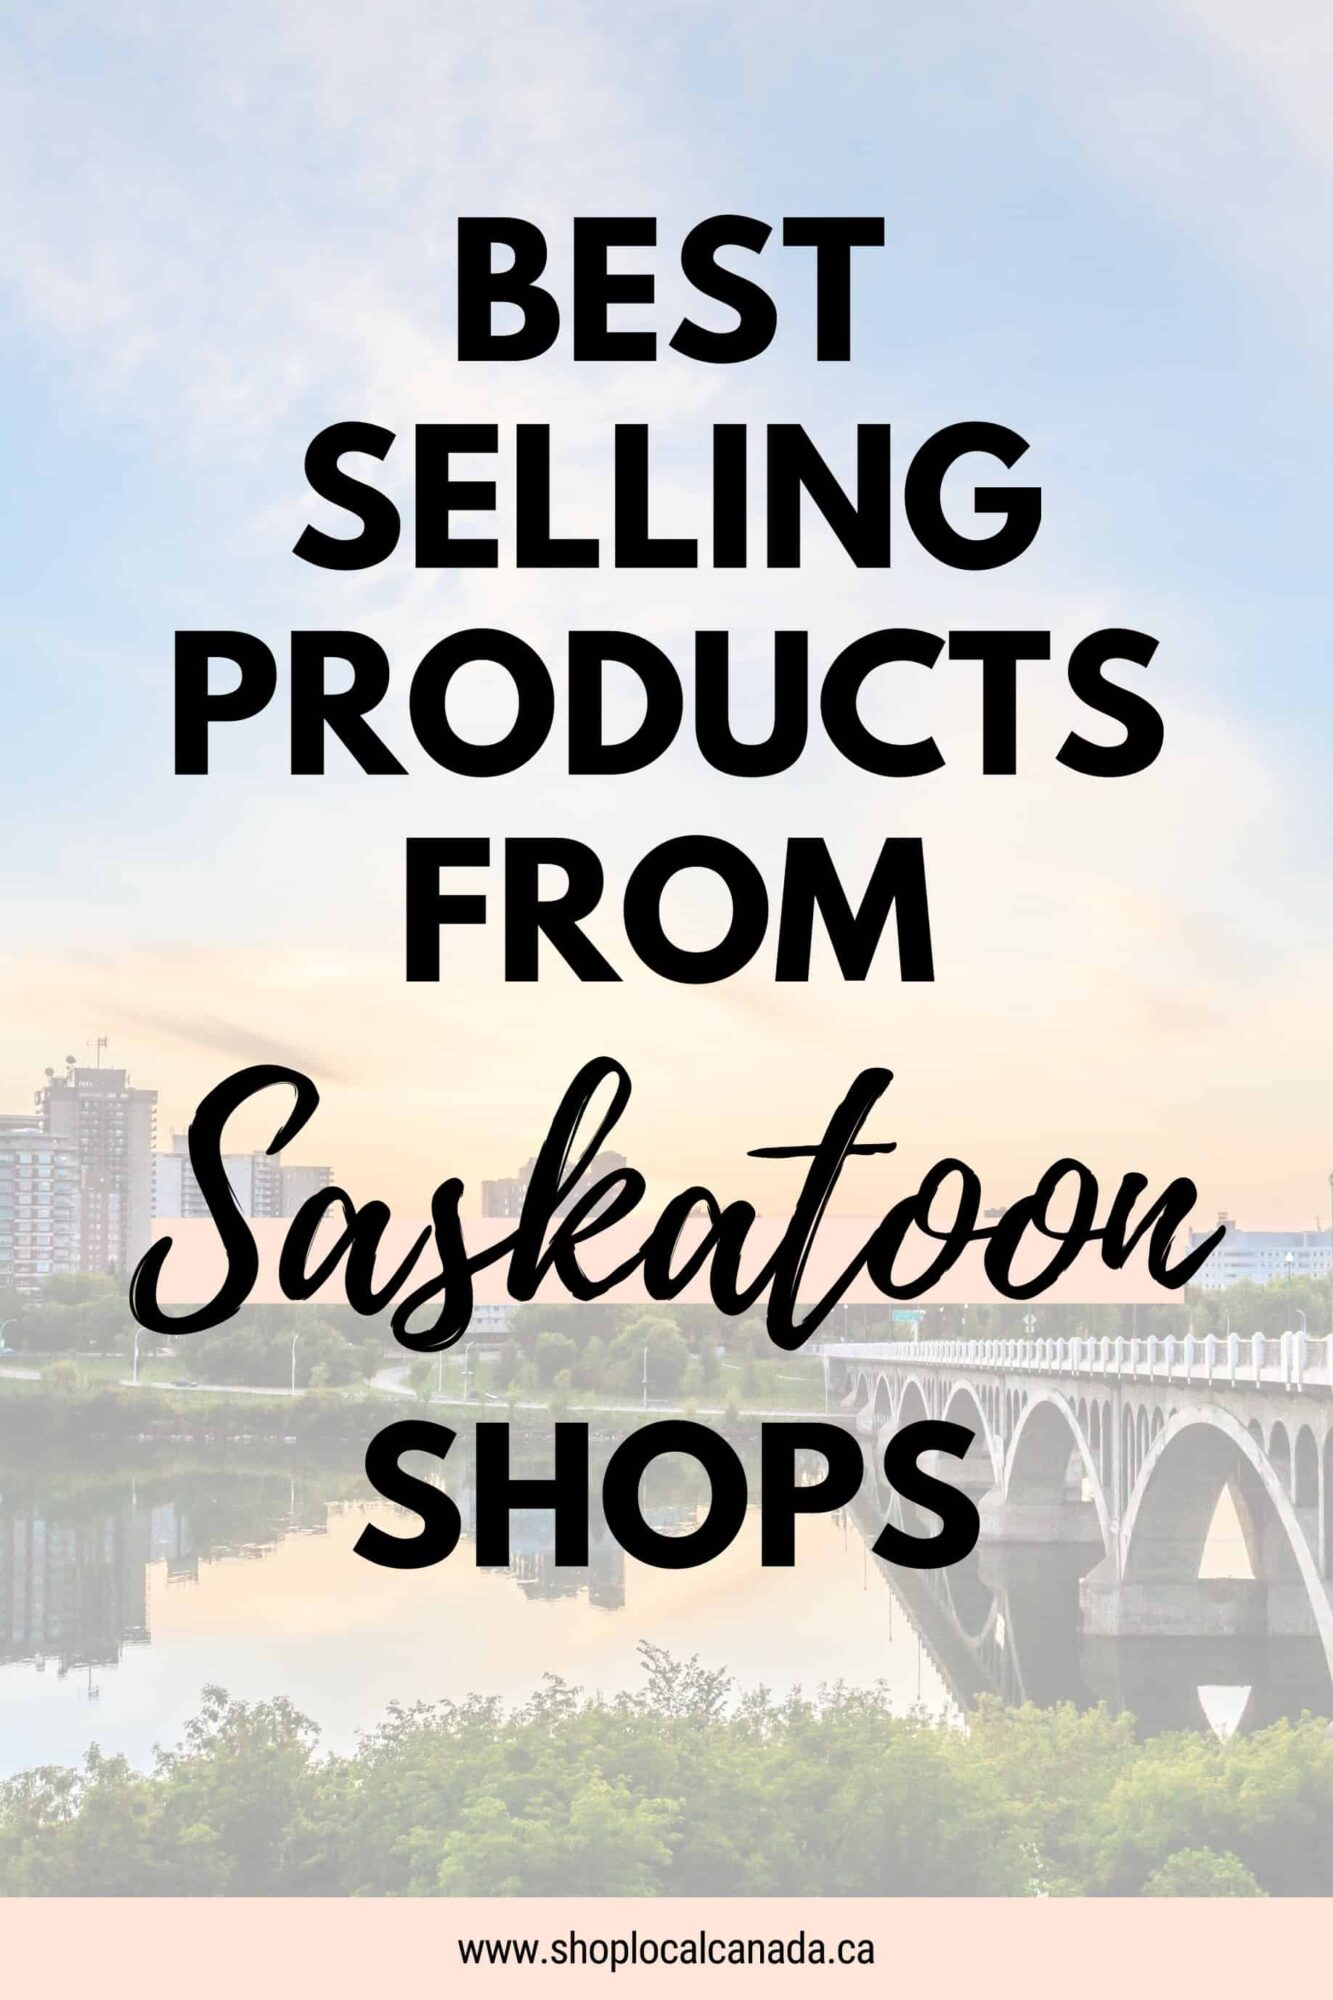 Best selling products from local Saskatoon shops